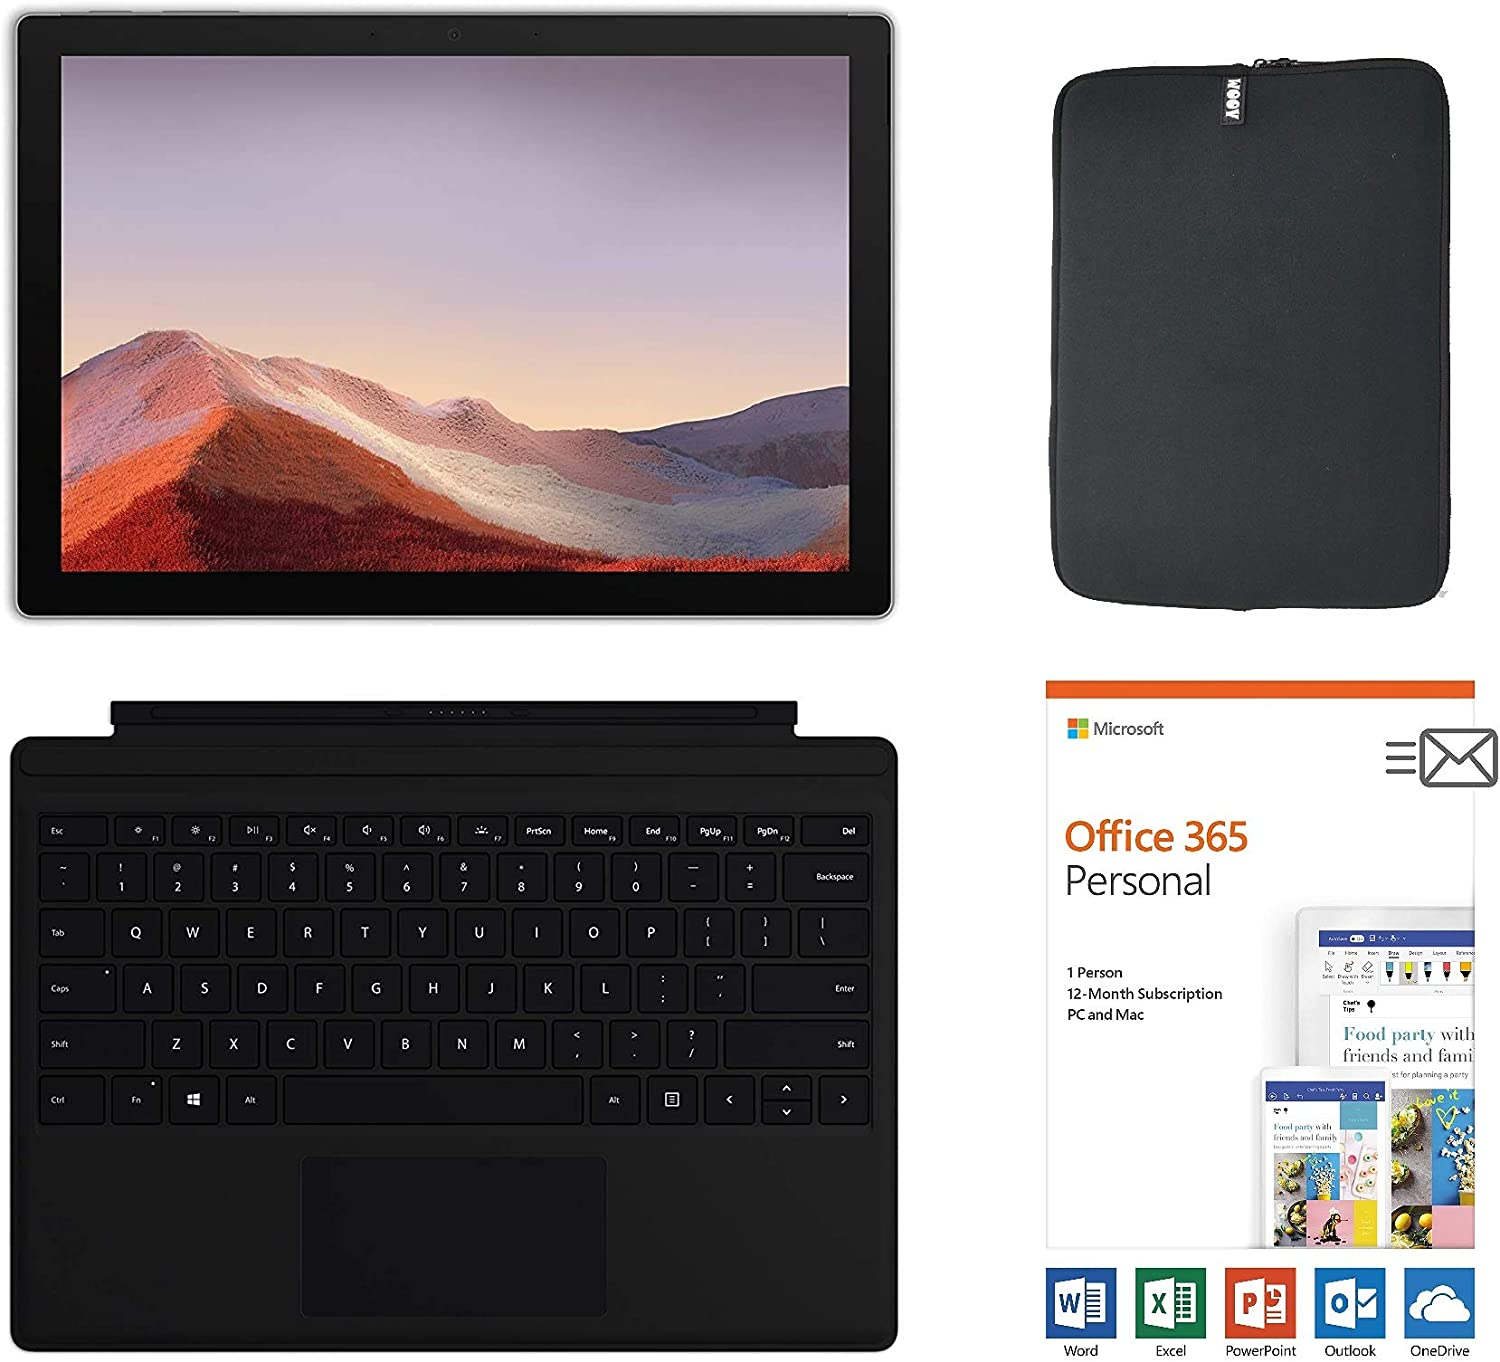 Microsoft Surface Pro 7 12.3 Inch Touchscreen Tablet PC Bundle w/Type Cover + Office 365 (1 Year) & WOOV Sleeve, Intel 10th Gen Core i3, 4GB RAM, 128GB SSD, USB-C, Windows 10, Platinum (Latest Model)